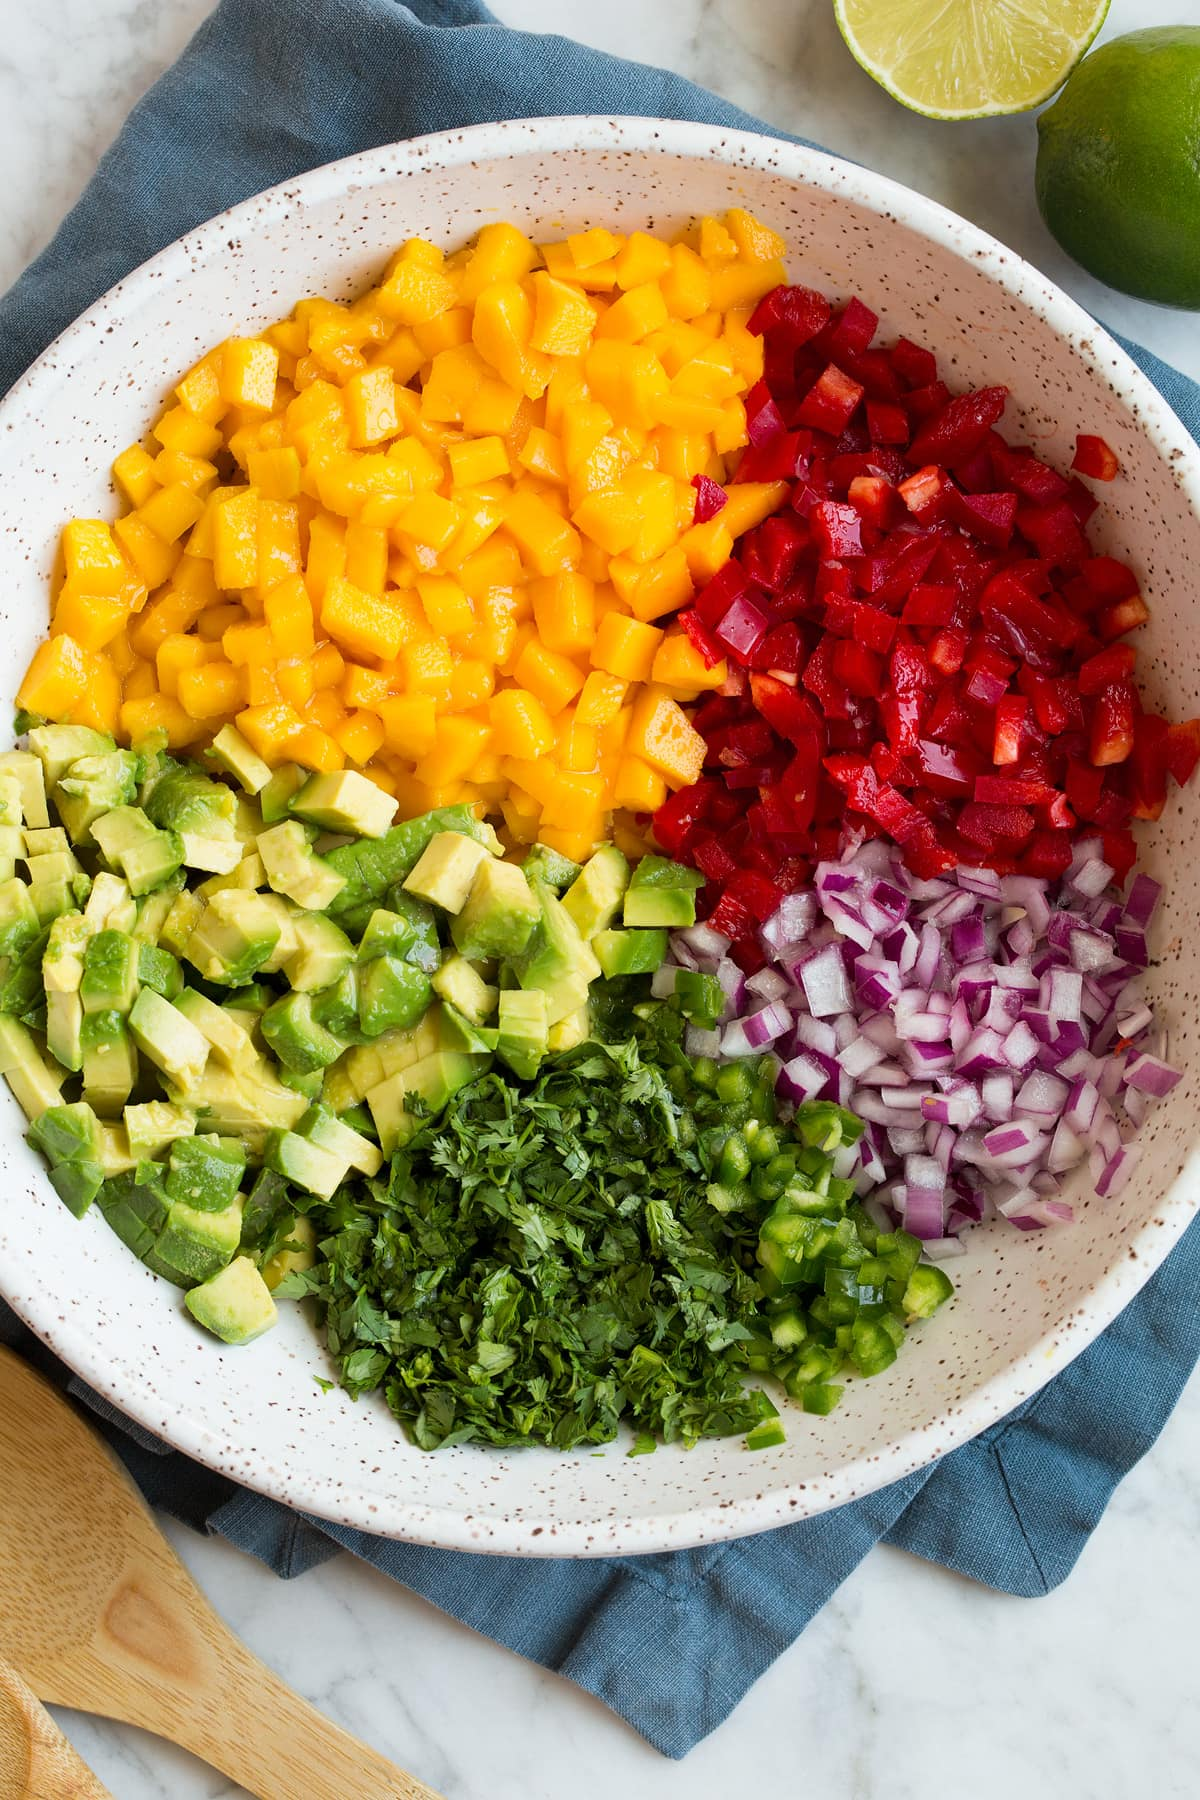 Prepared mango salsa ingredients shown in sections in a mixing bowl before tossing together.